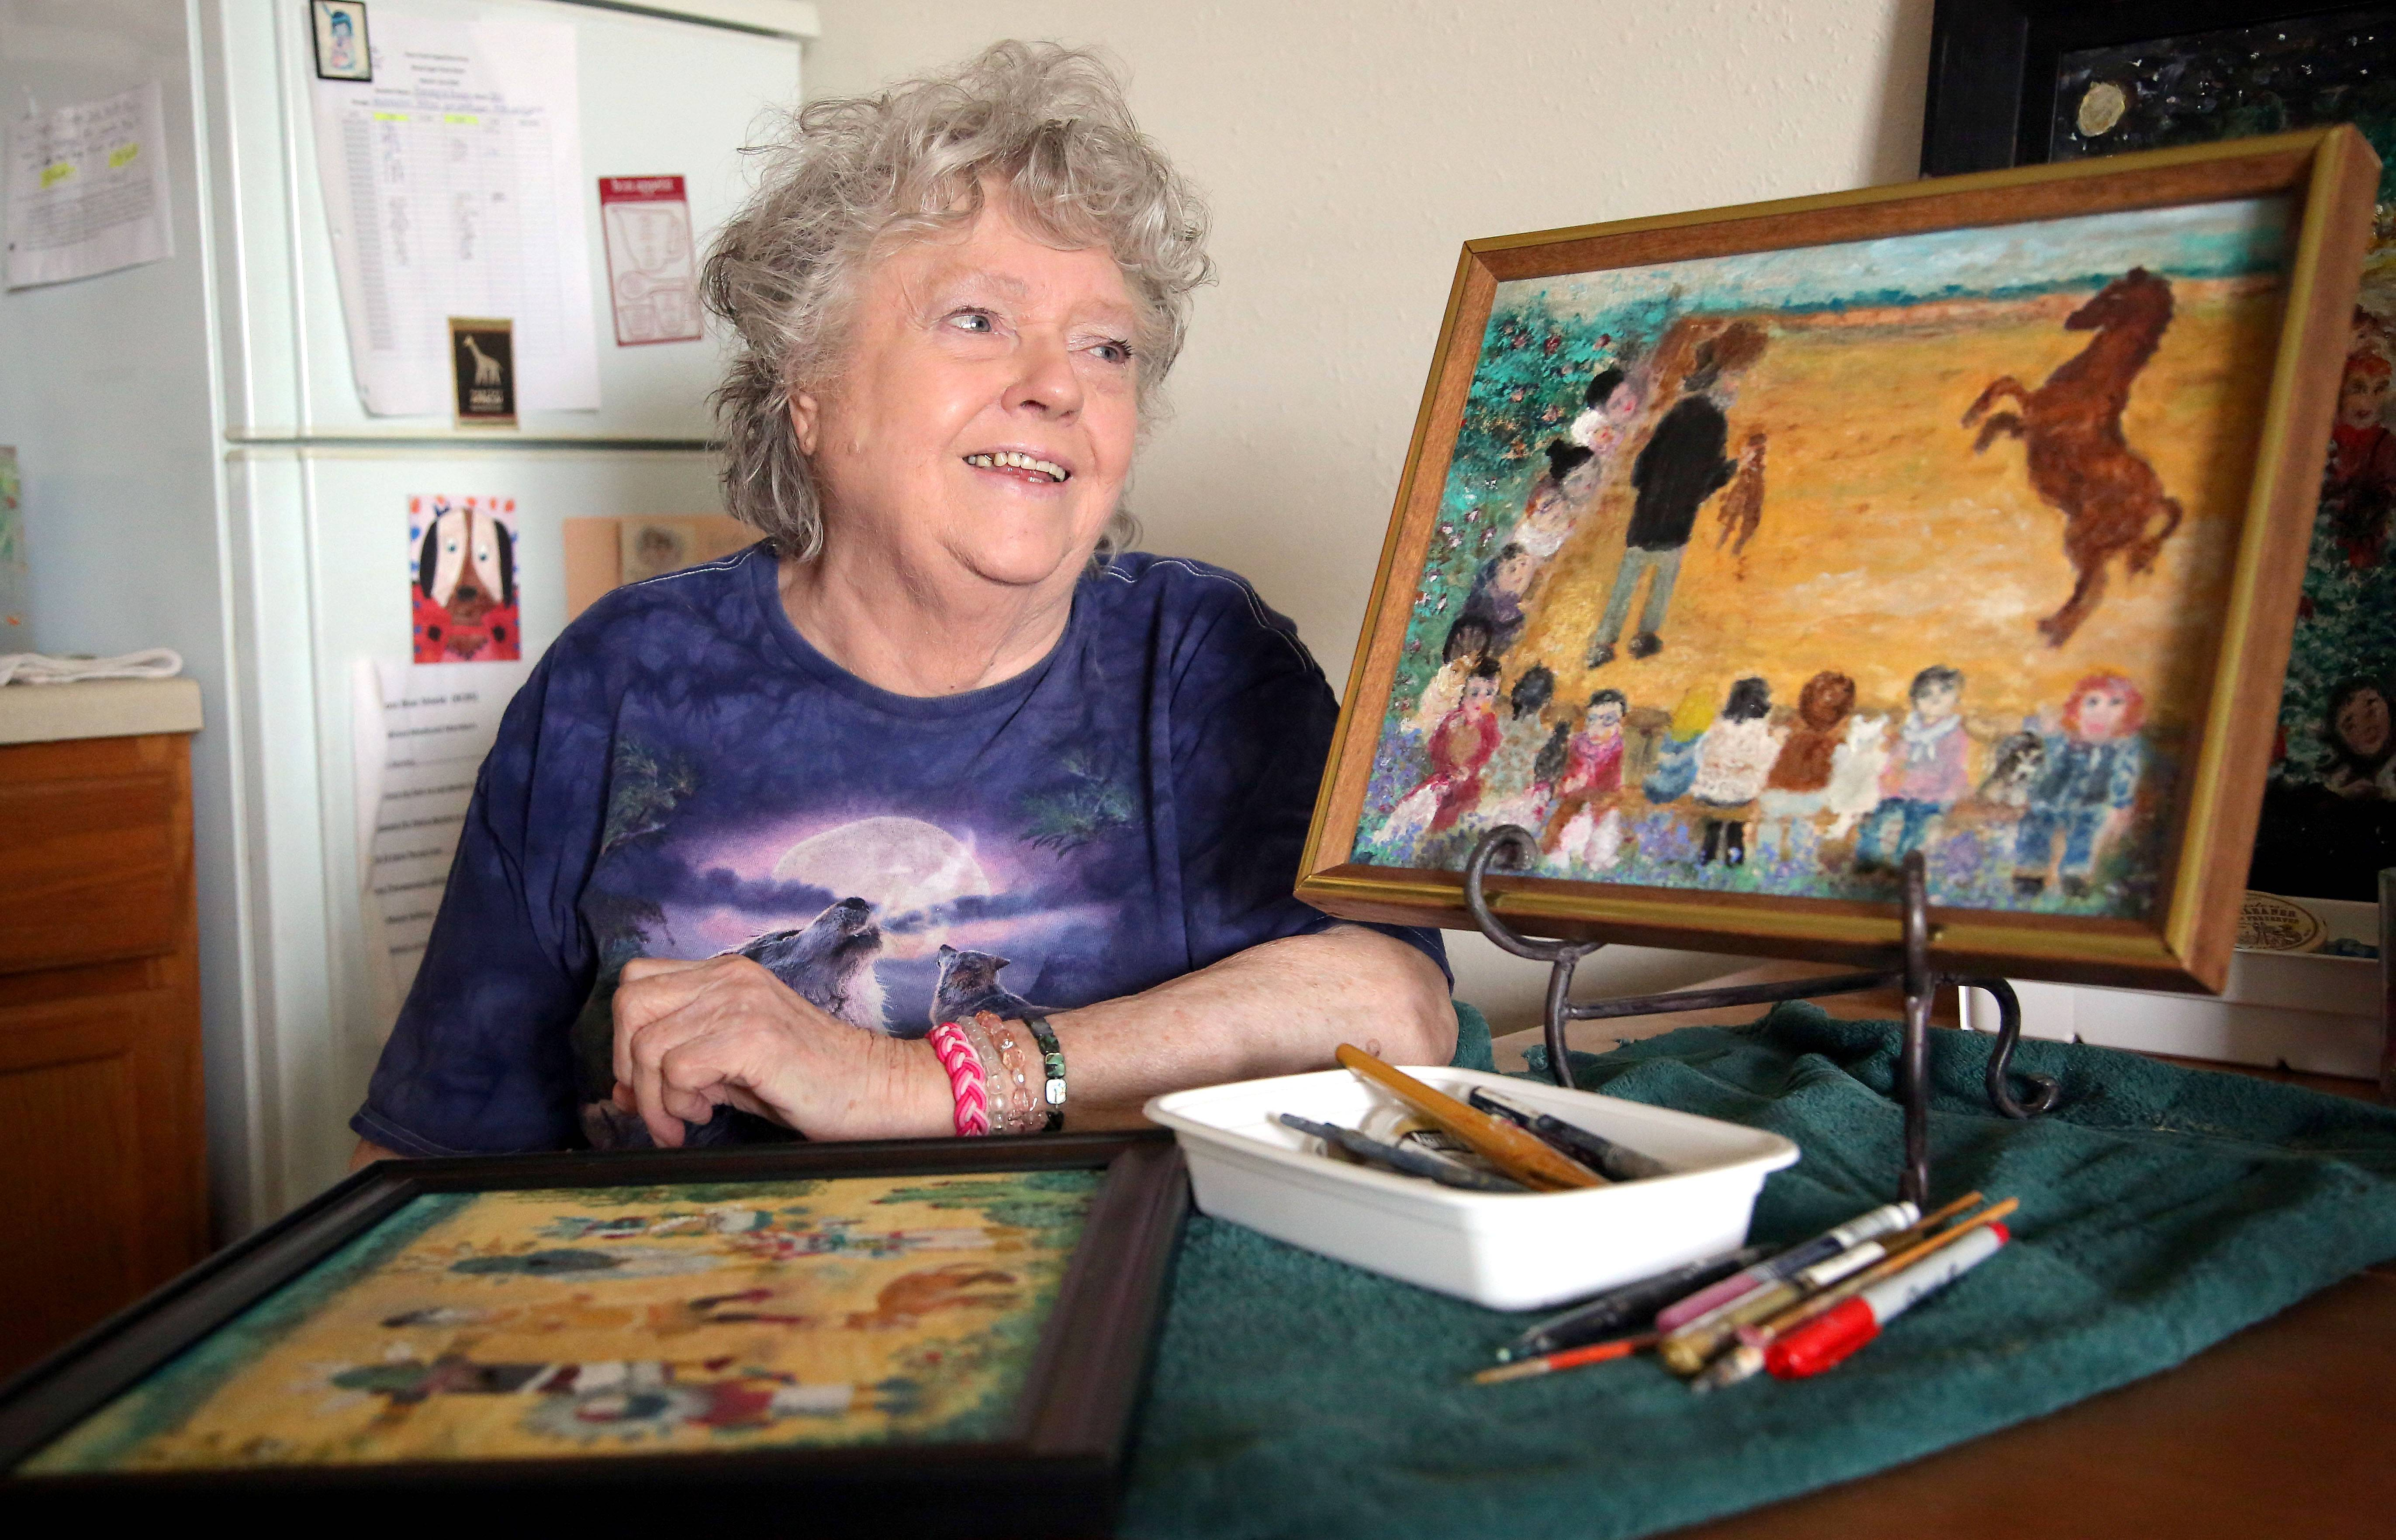 Georgia Pirron, 87, was forced to give up her art after her stroke in 2006. A decade later, she taught herself how to paint with her left hand.